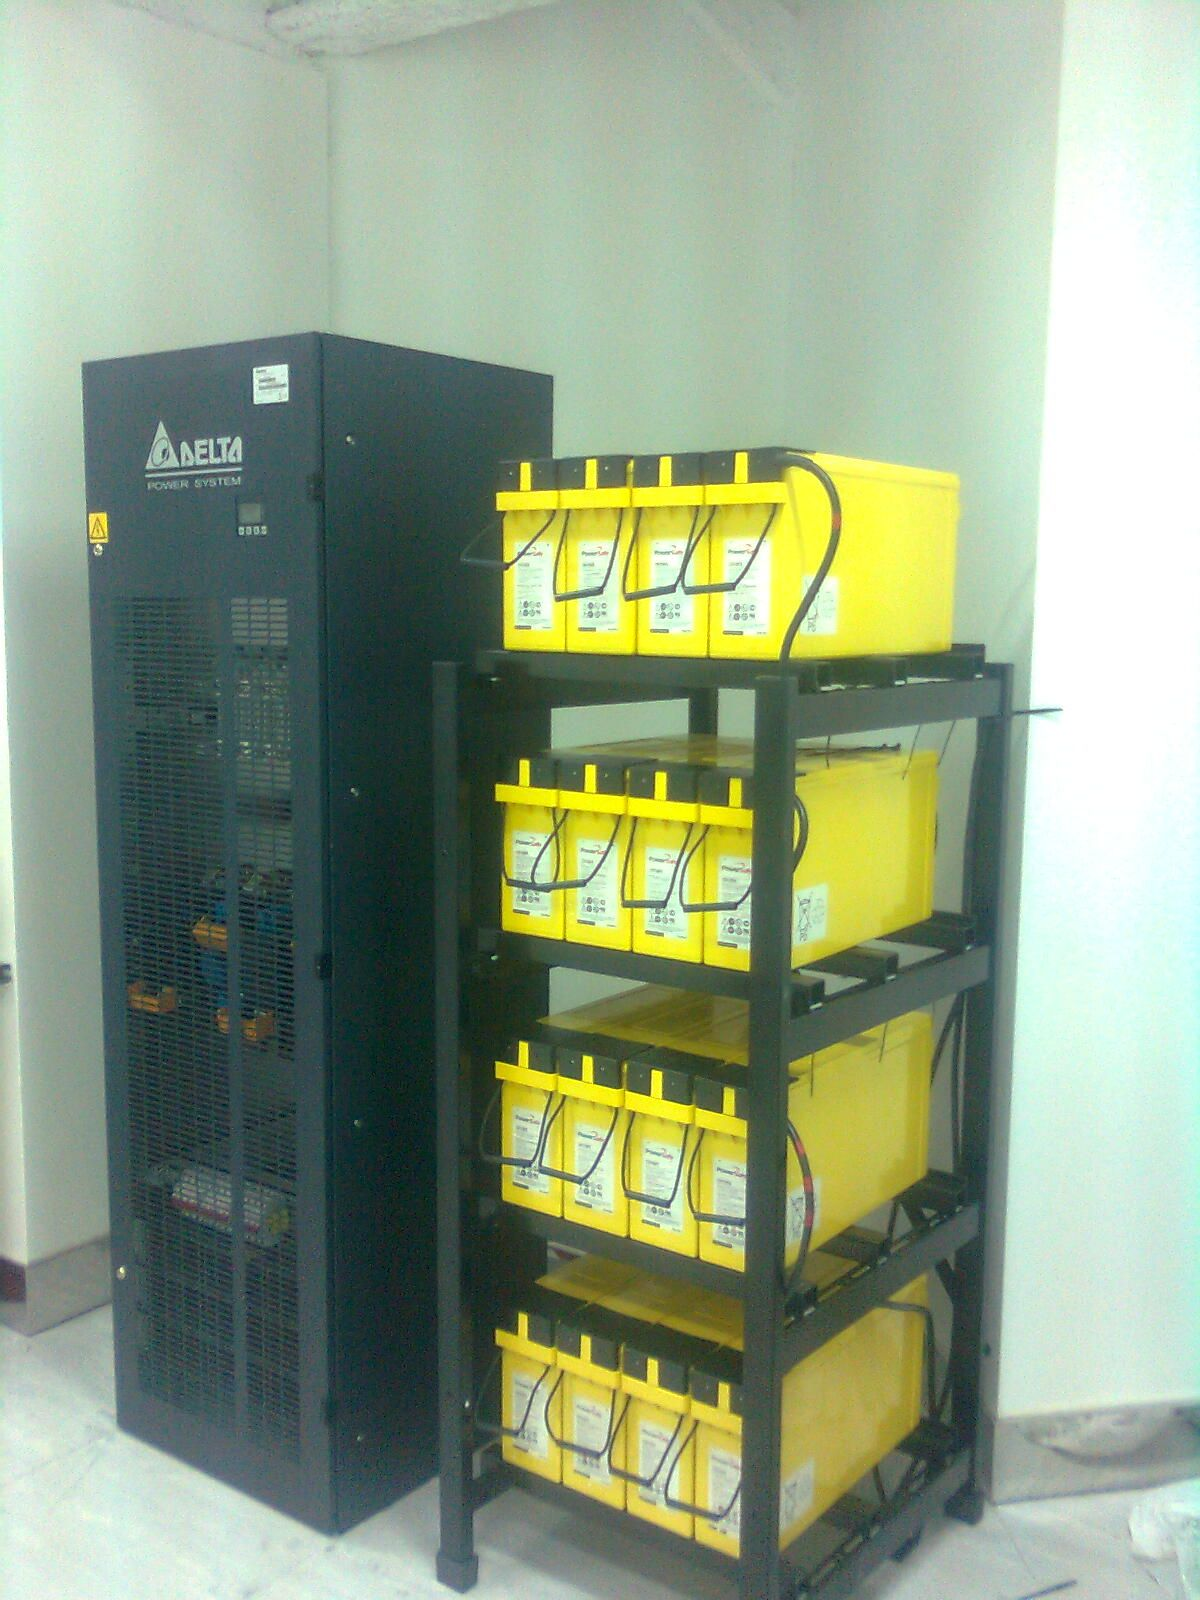 Telecom Rectifier From Delta Energy Systems With Front Terminal Batteries From Enersys For A 48vd In 2020 Locker Storage Uninterruptible Power Supplies Power Source